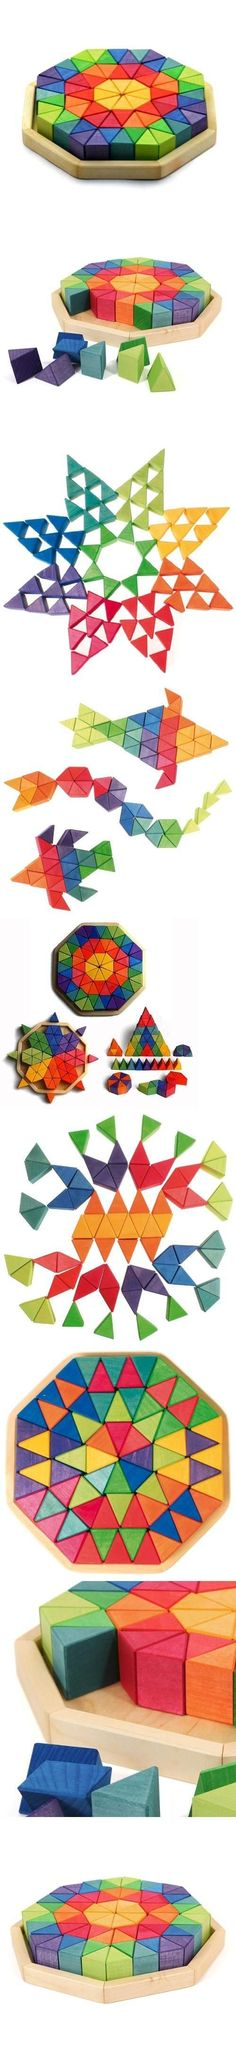 Grimm's Large Octagon Form Building Set - Wooden Mosaic Block Puzzle, 72 Triangles, At nearly 12 inches across, this colorful geometric block puzzle is Grimm's largest Octagon. It's a free-form puzzle for making your own creations and can also be used for 3 dimensional building. Comp..., #Toys, #Stacking Blocks